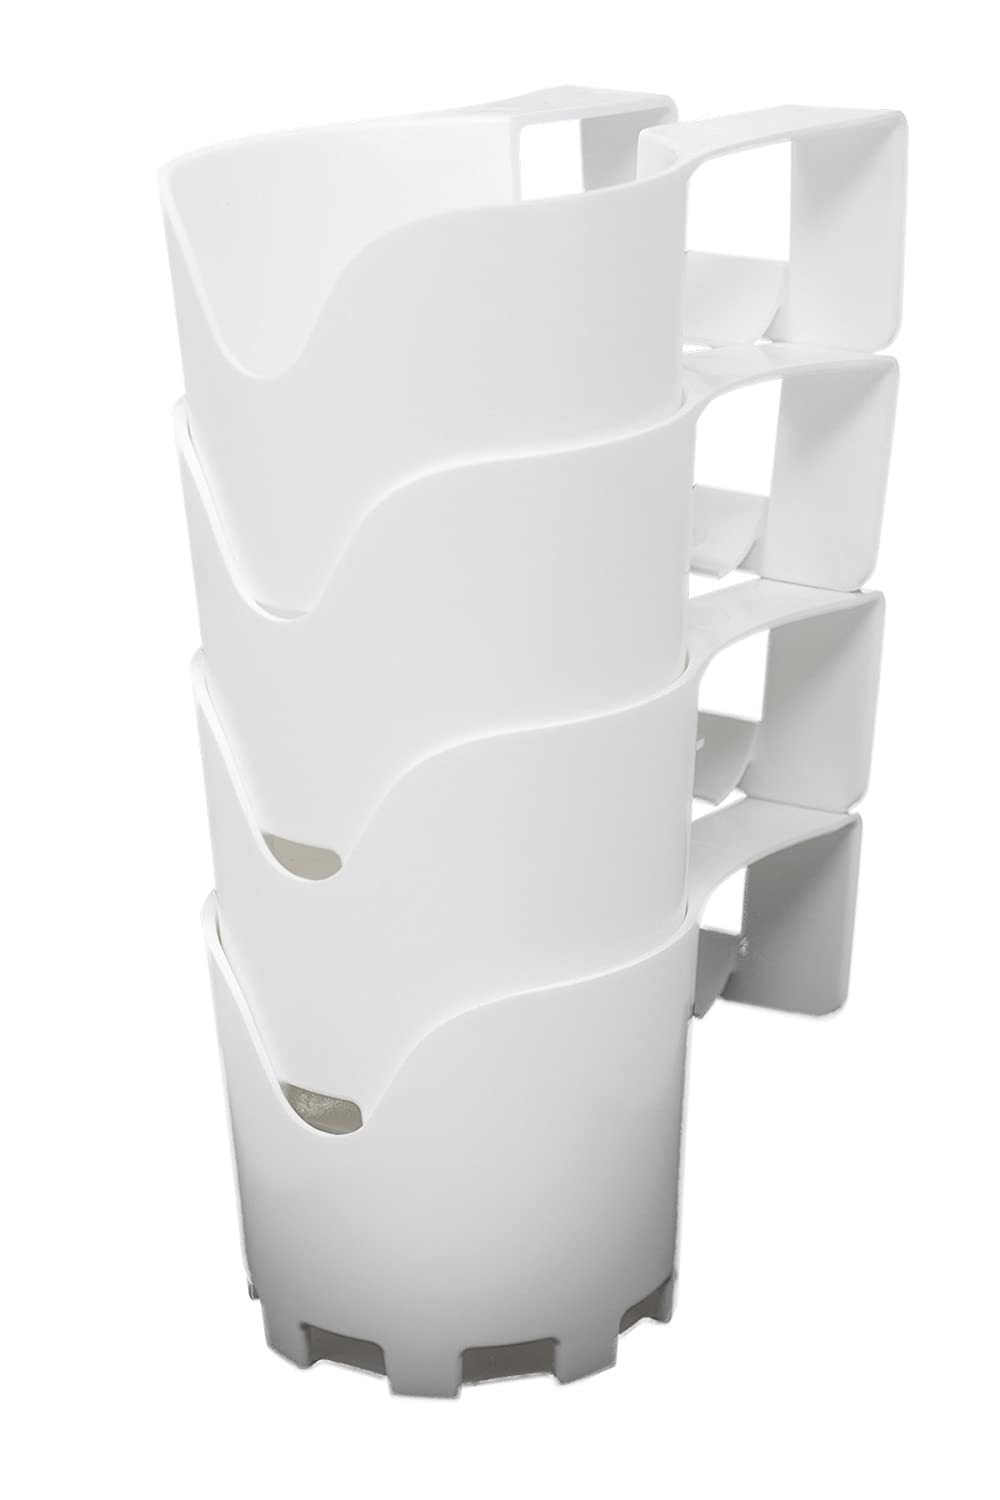 Storage Theory | Poolside Cup Holder | Designed for Above Ground Pools | Only Fits 2 inch or Less Round Top Bar | White Color | 4 Pack